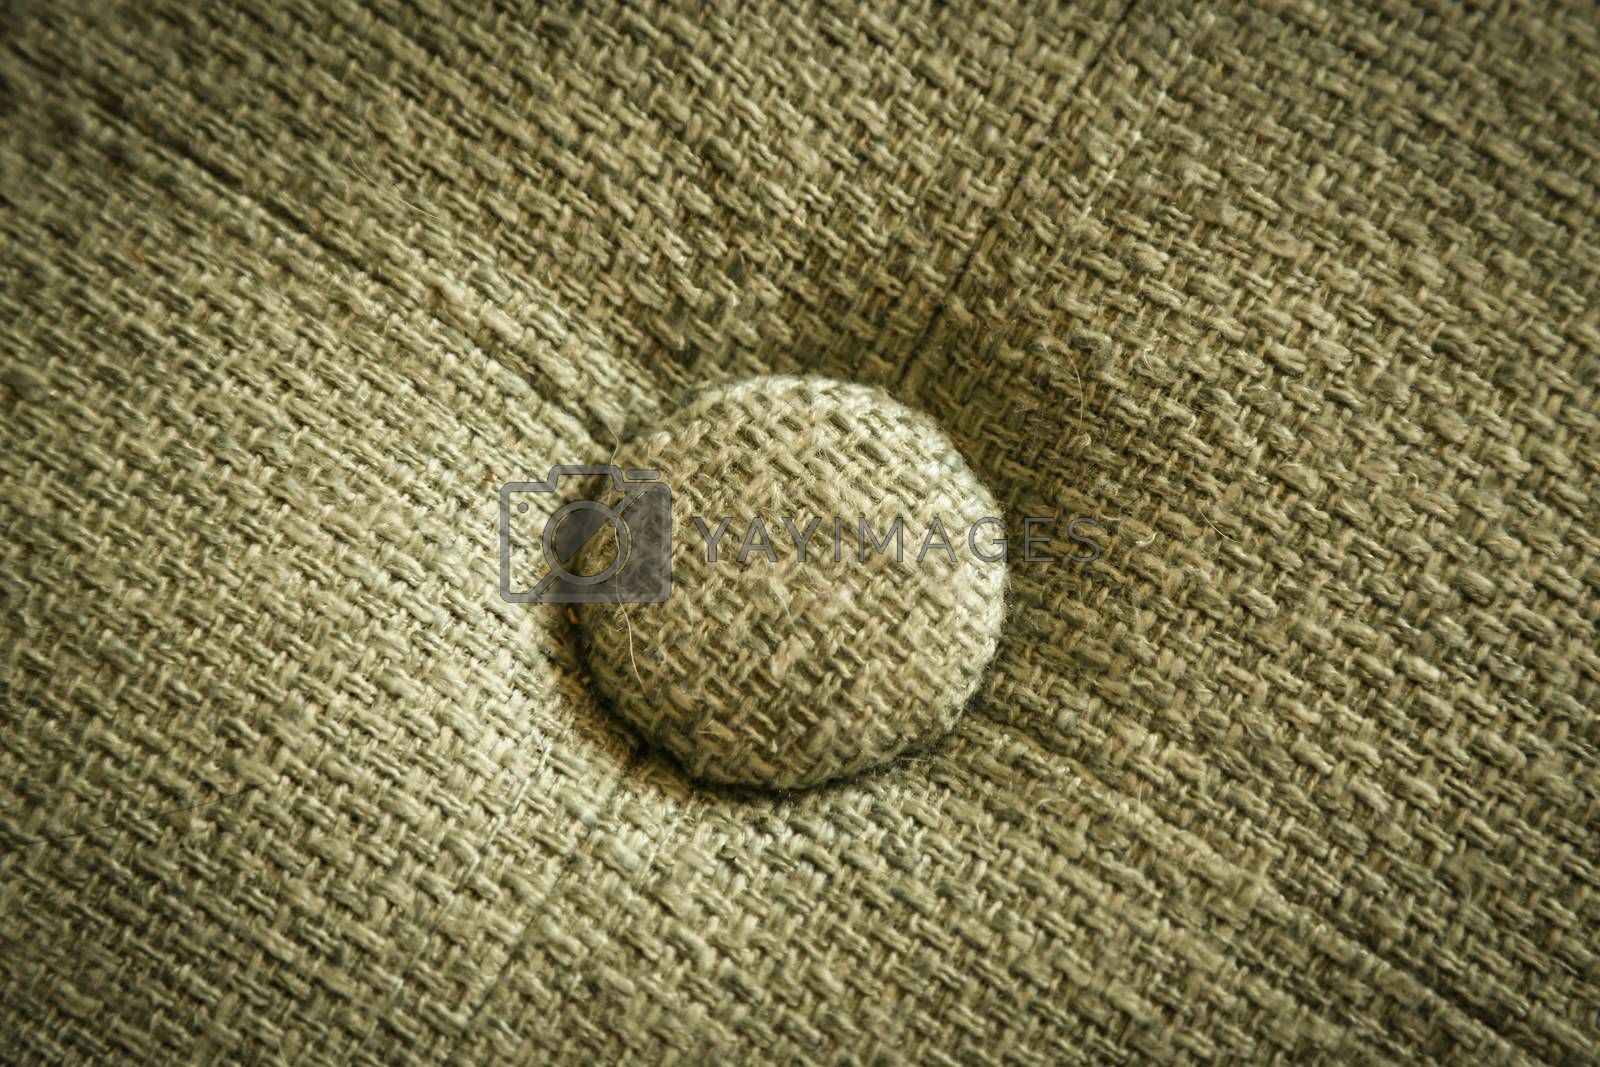 Royalty free image of Material texture, with depth of field - Beige colour with light vignette.  by inspireme